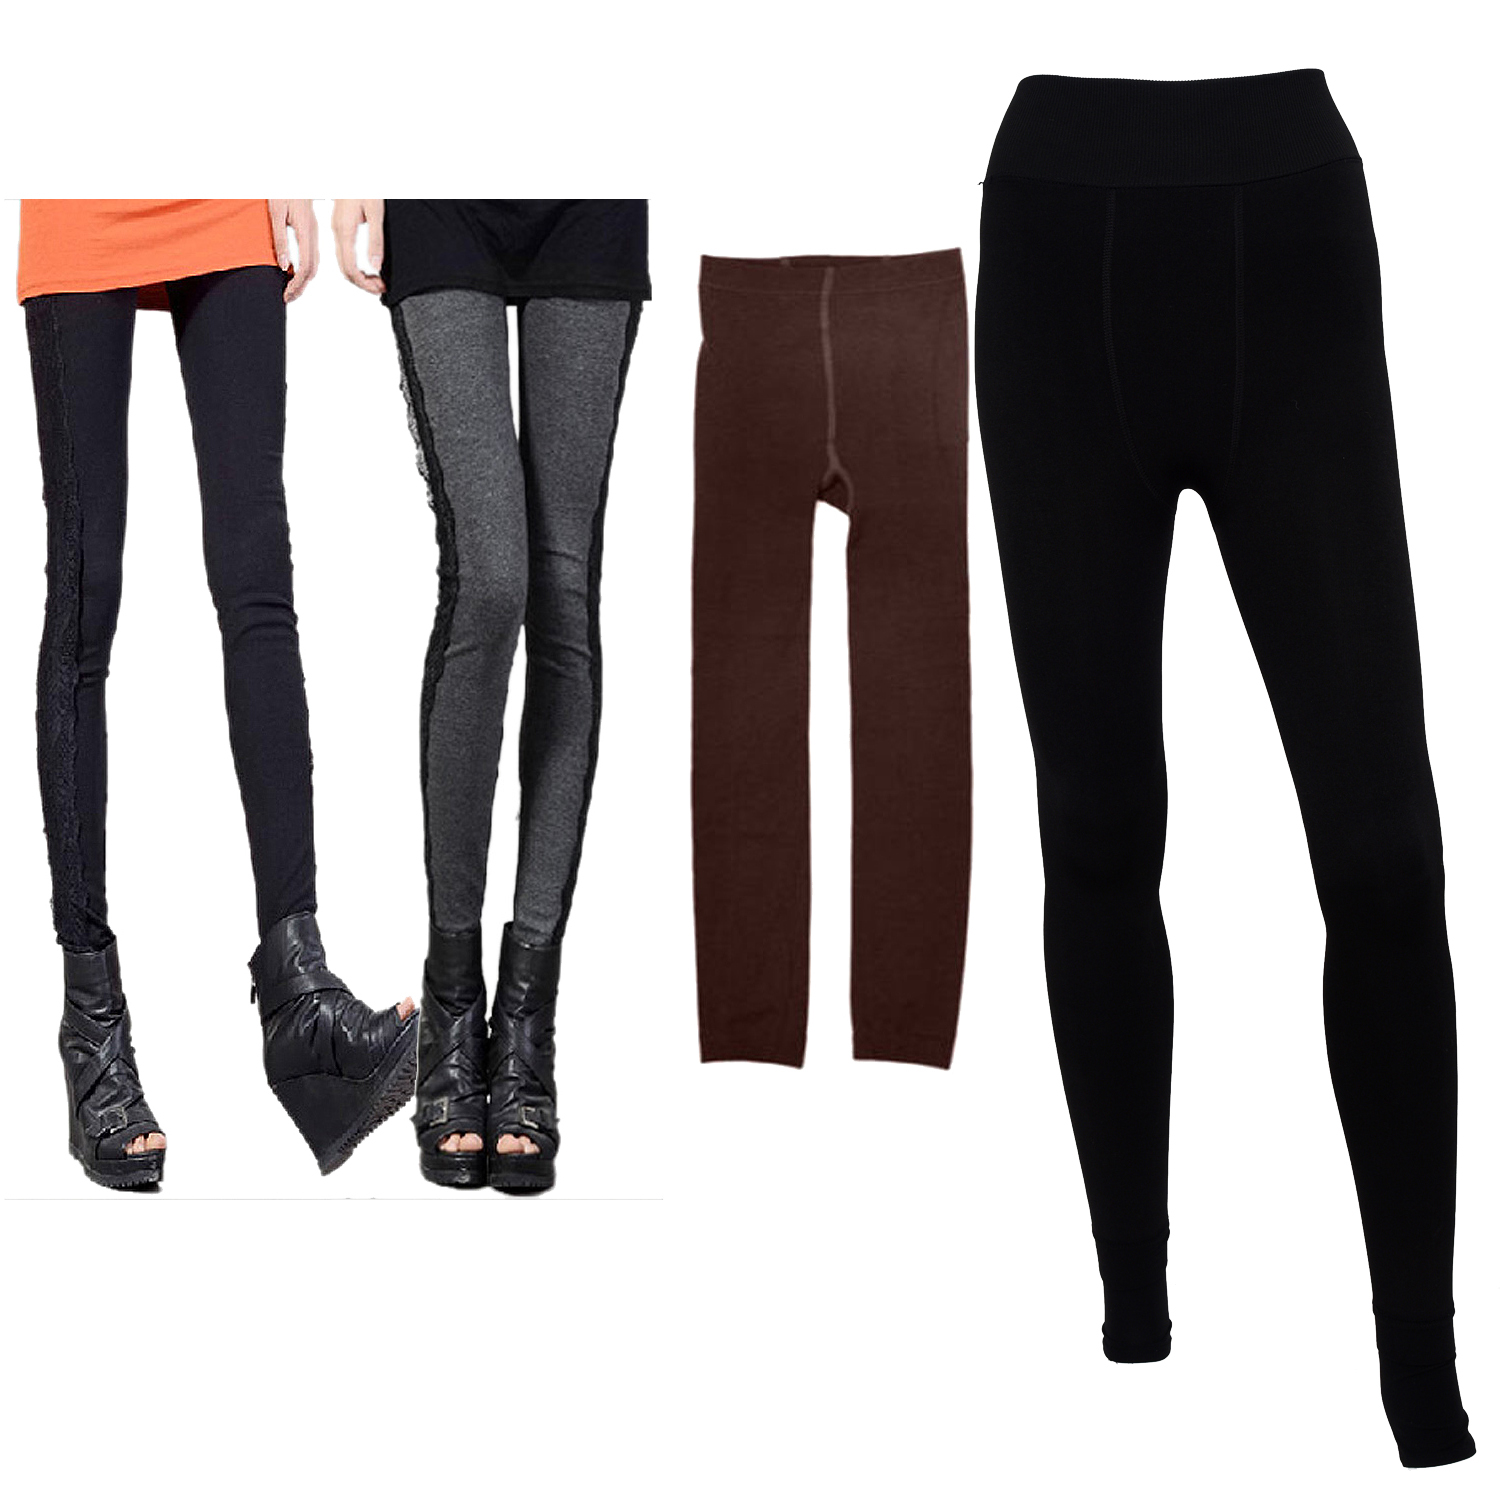 Women Ladies Warm Winter Stretchy Cashmere Thick Thermal ...